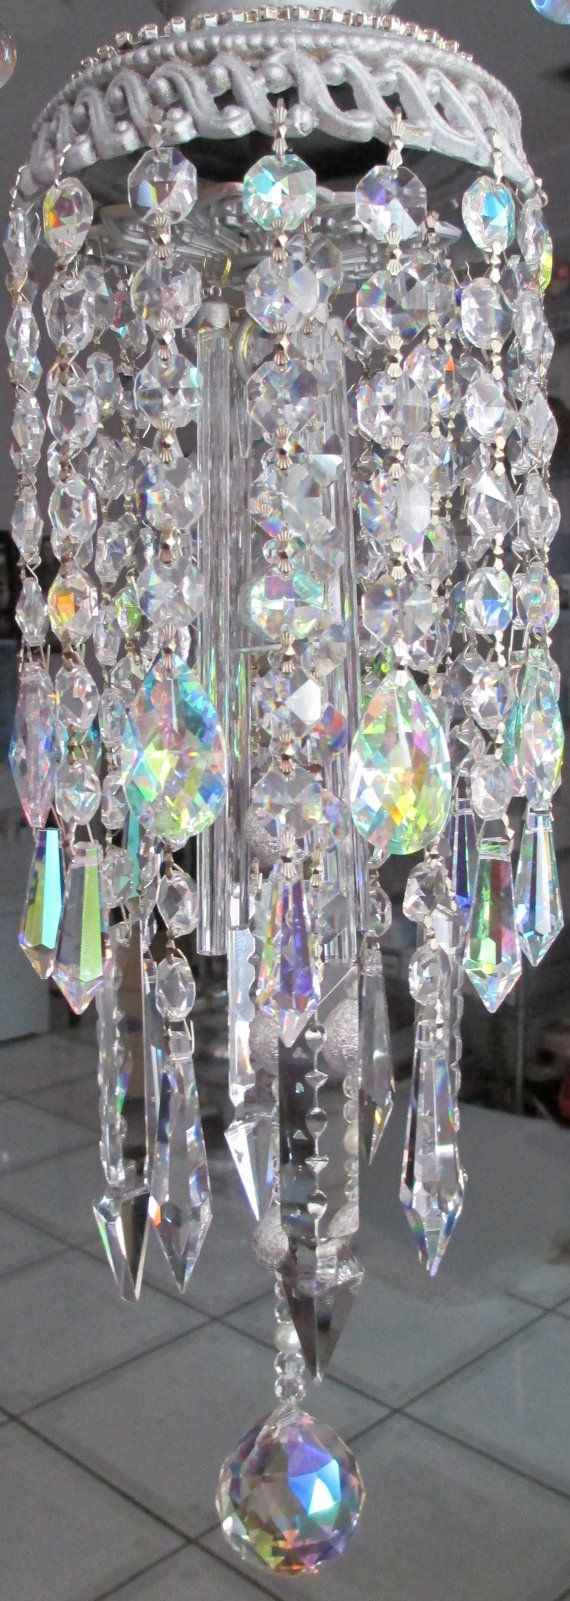 Crystal prism wind chime ab iridescent